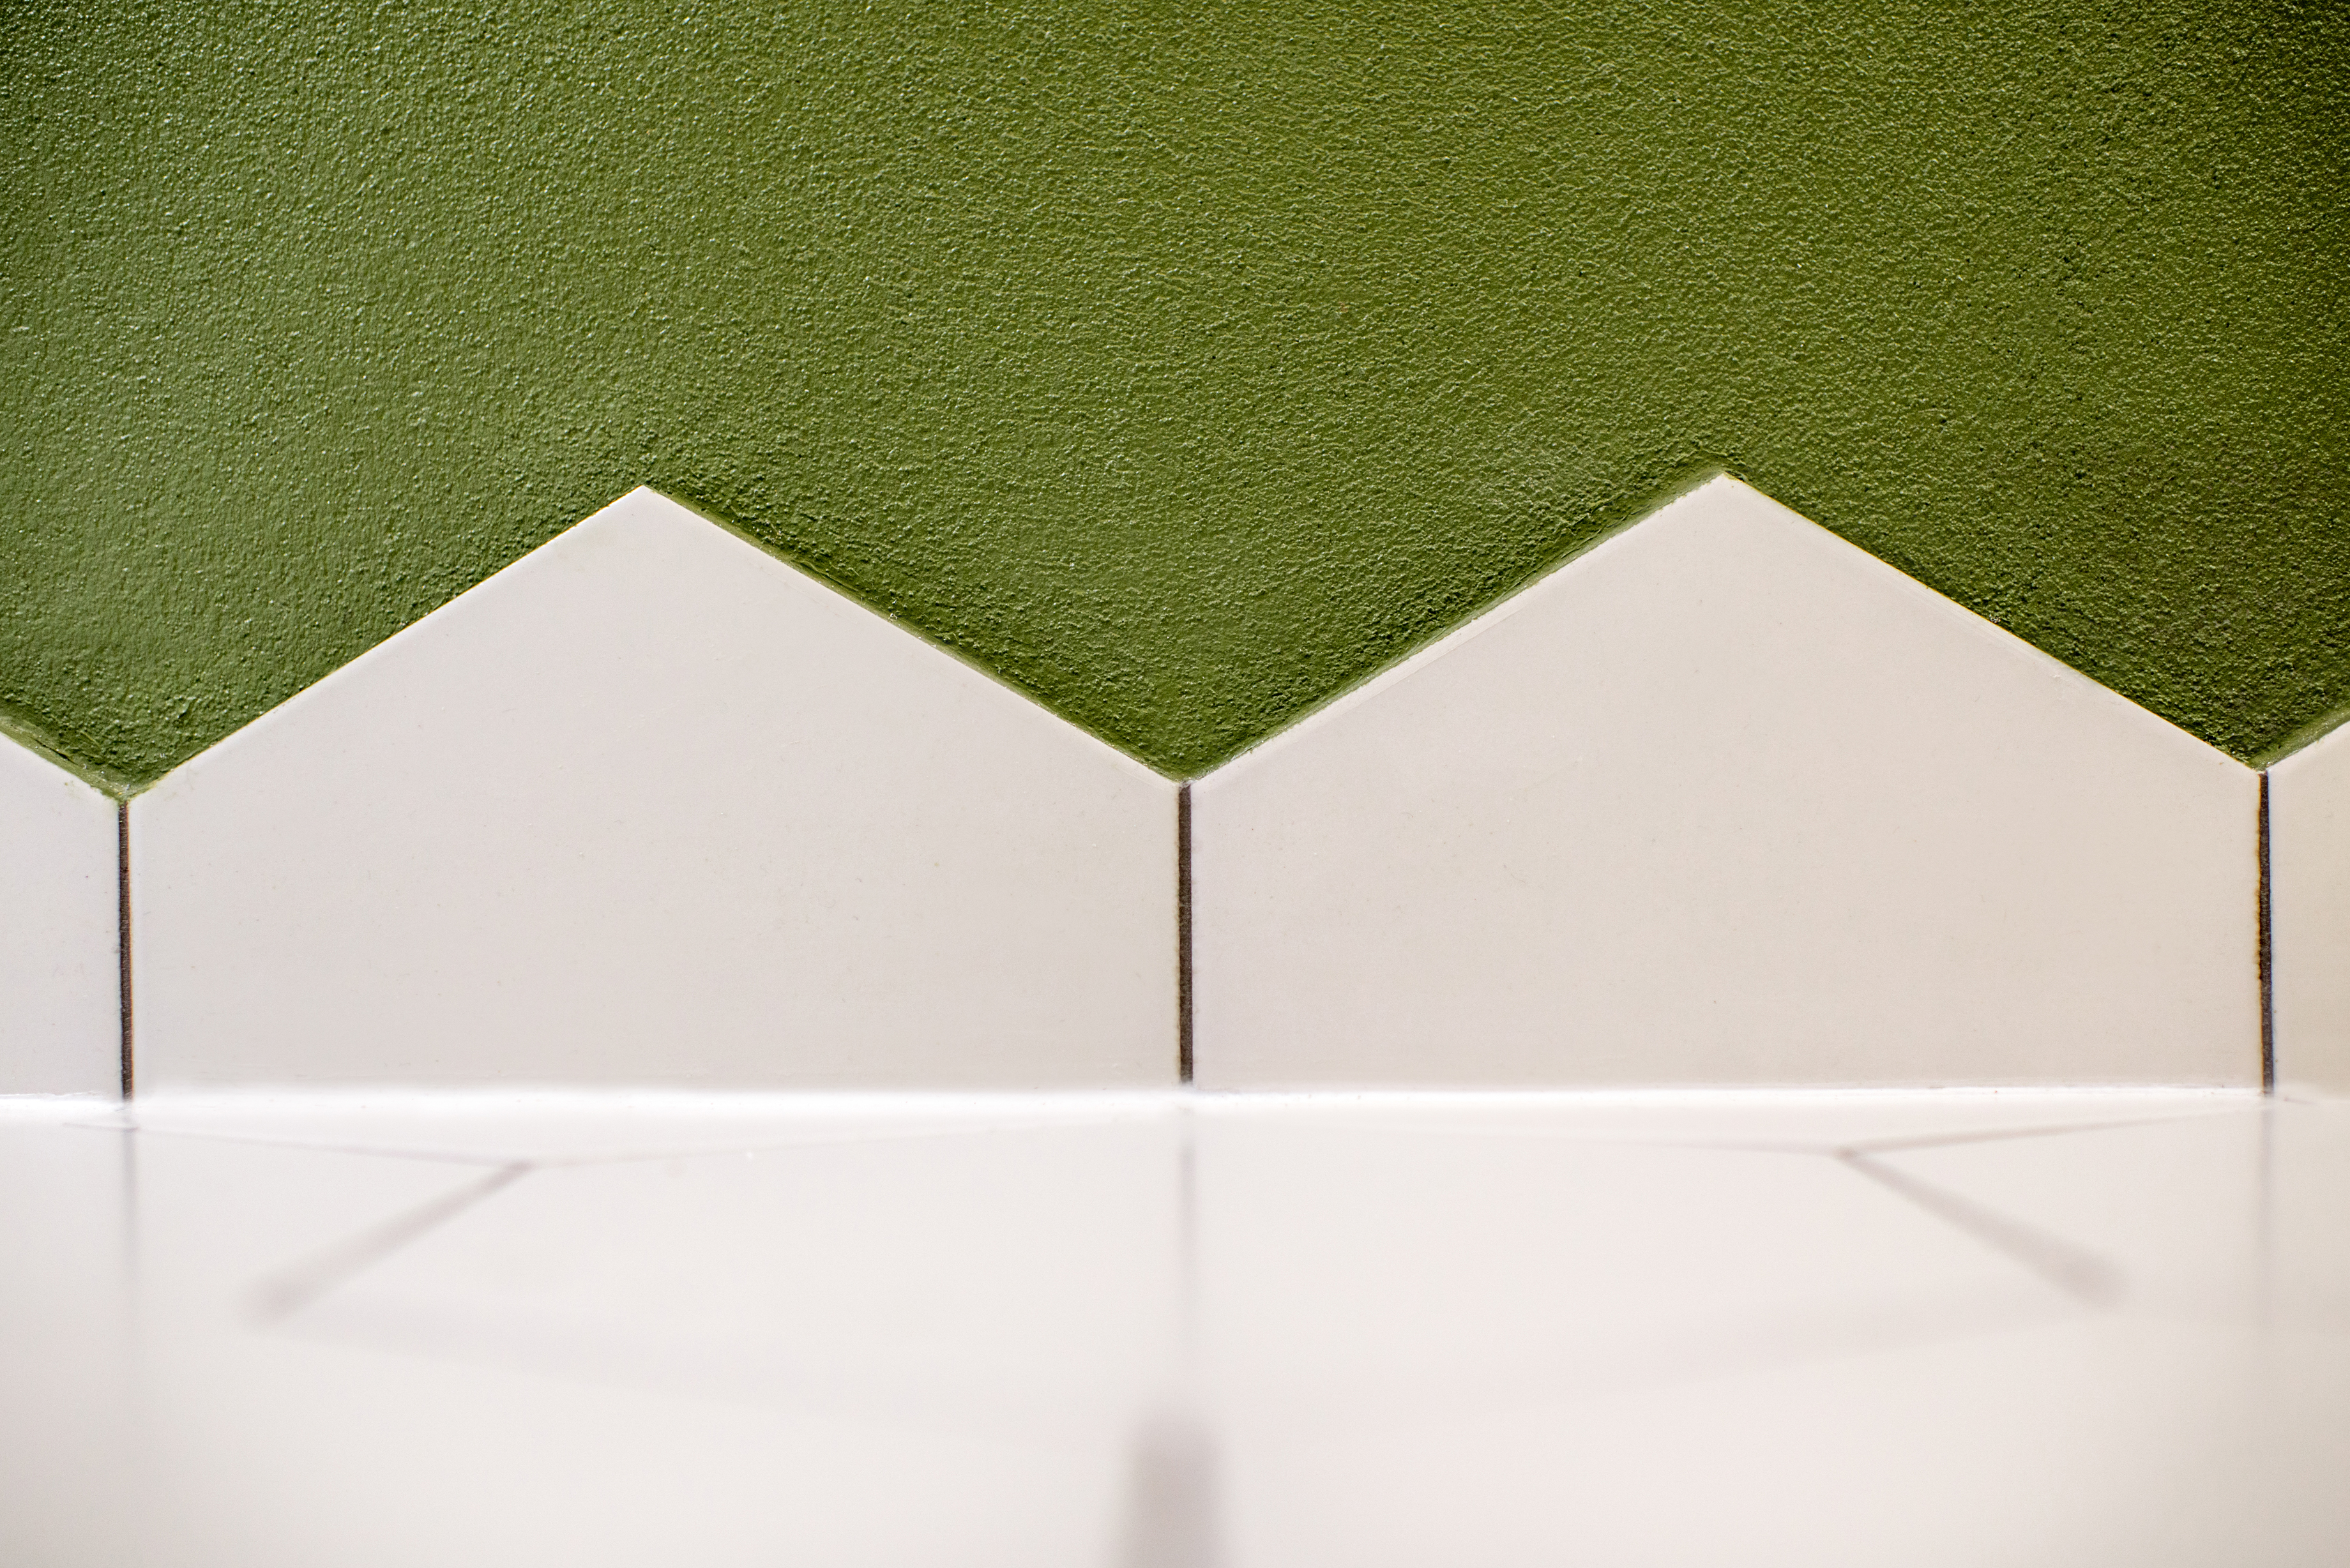 Acrylic Wall Surround Vs Tile Surround Home Guides Sf Gate